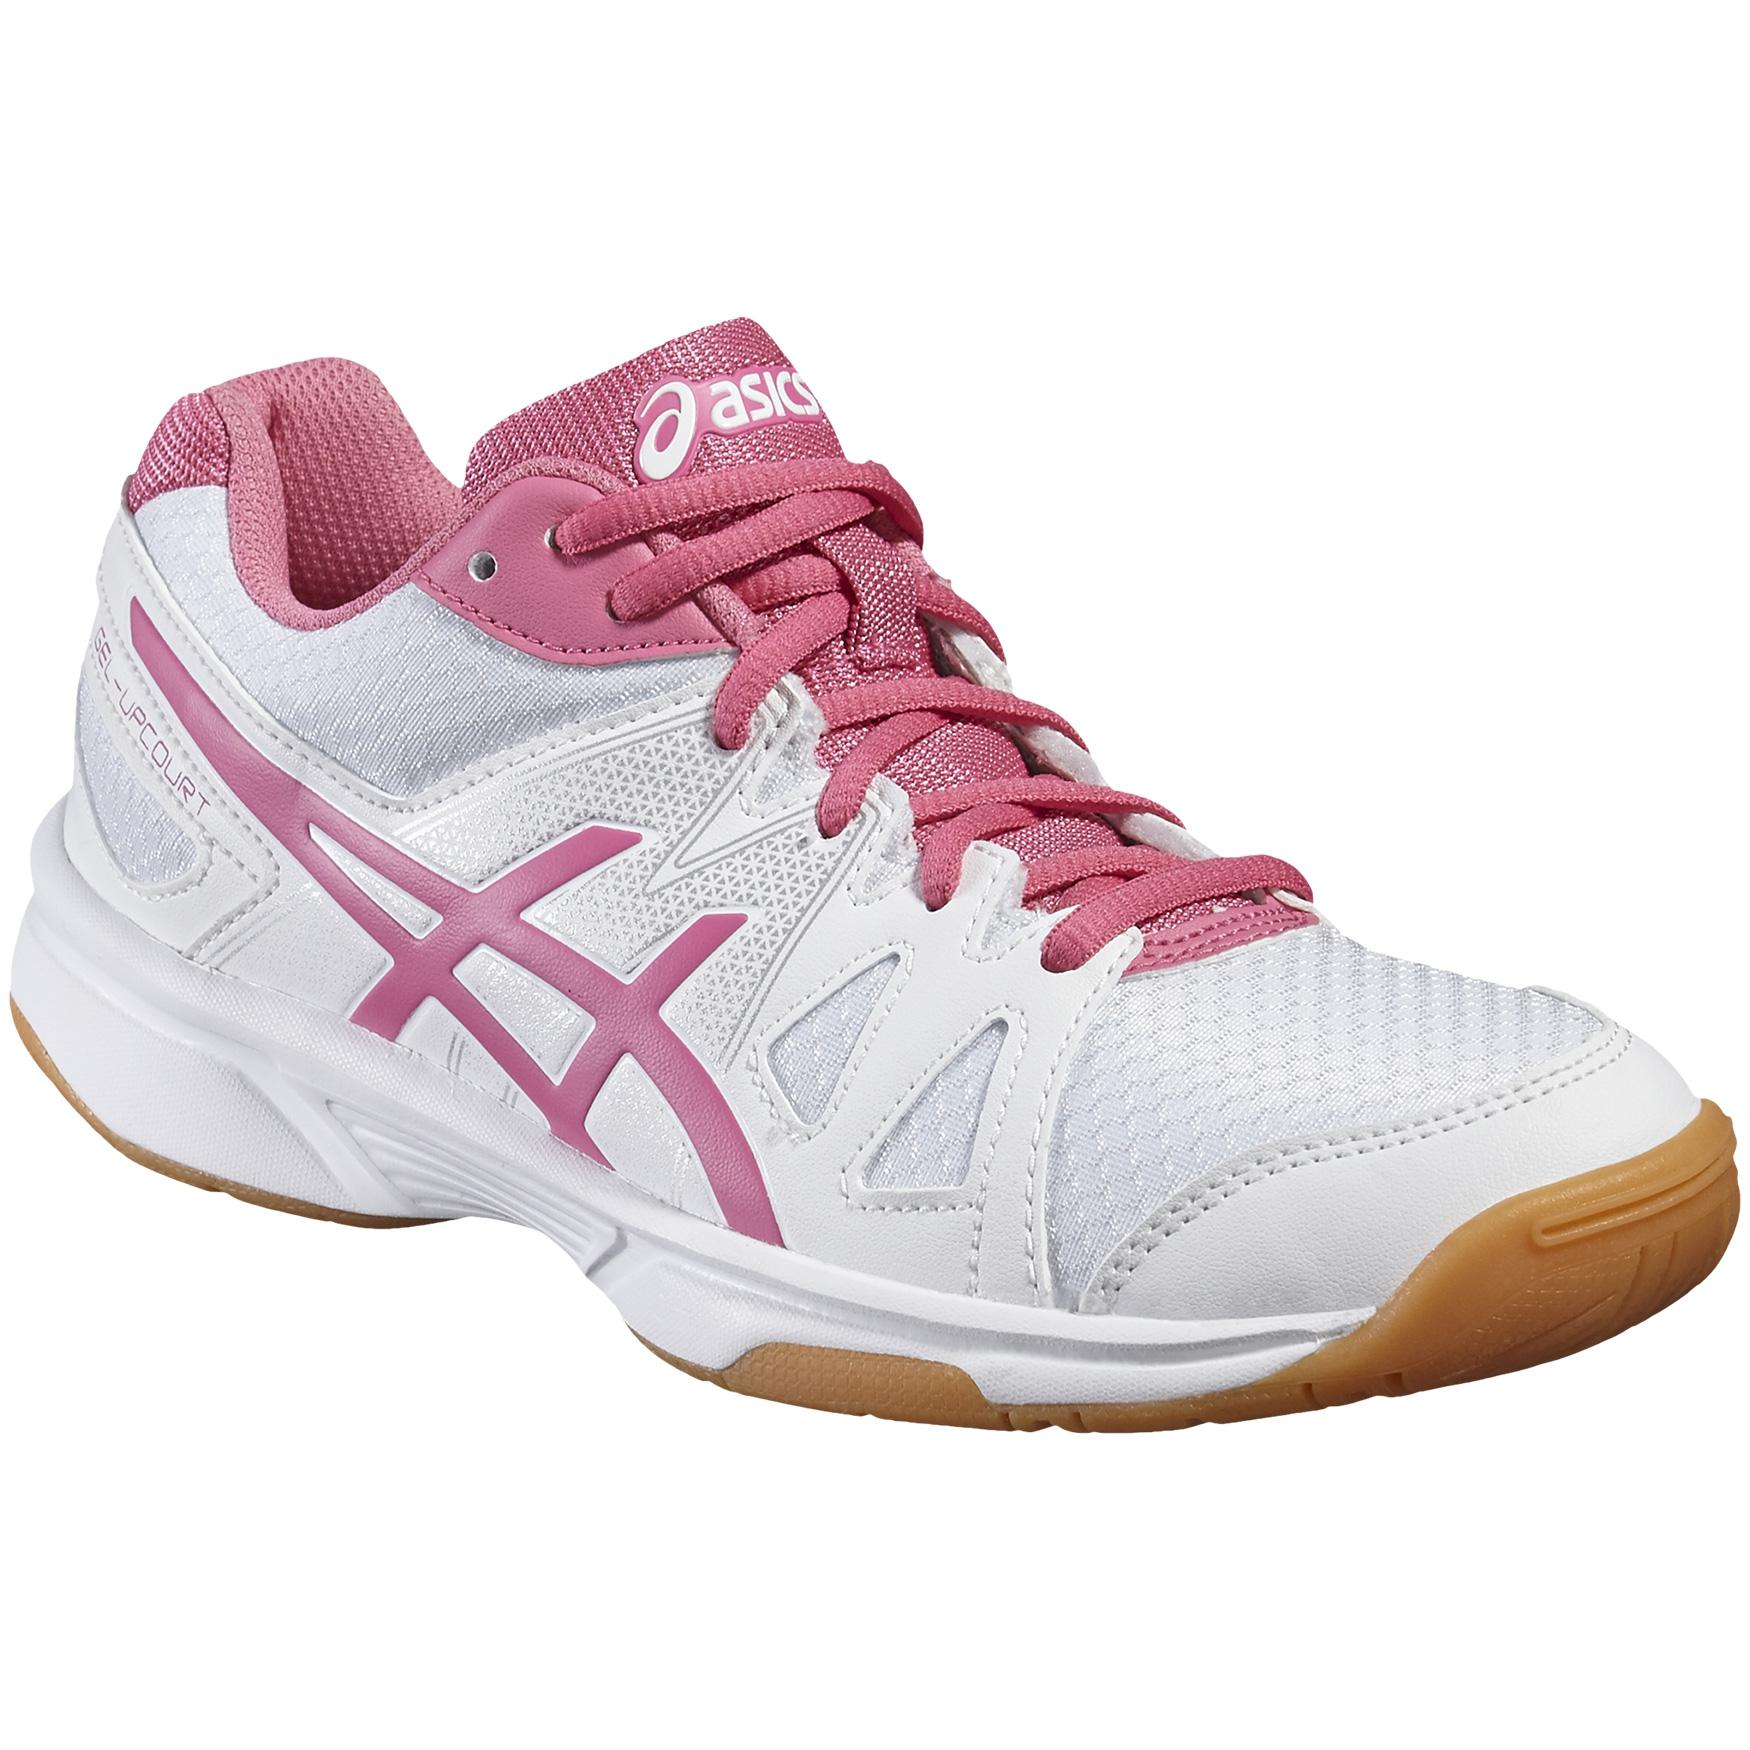 31f322d1704e Asics Girls GEL-Upcourt GS Indoor Court Shoes - White Azalea Pink -  Tennisnuts.com